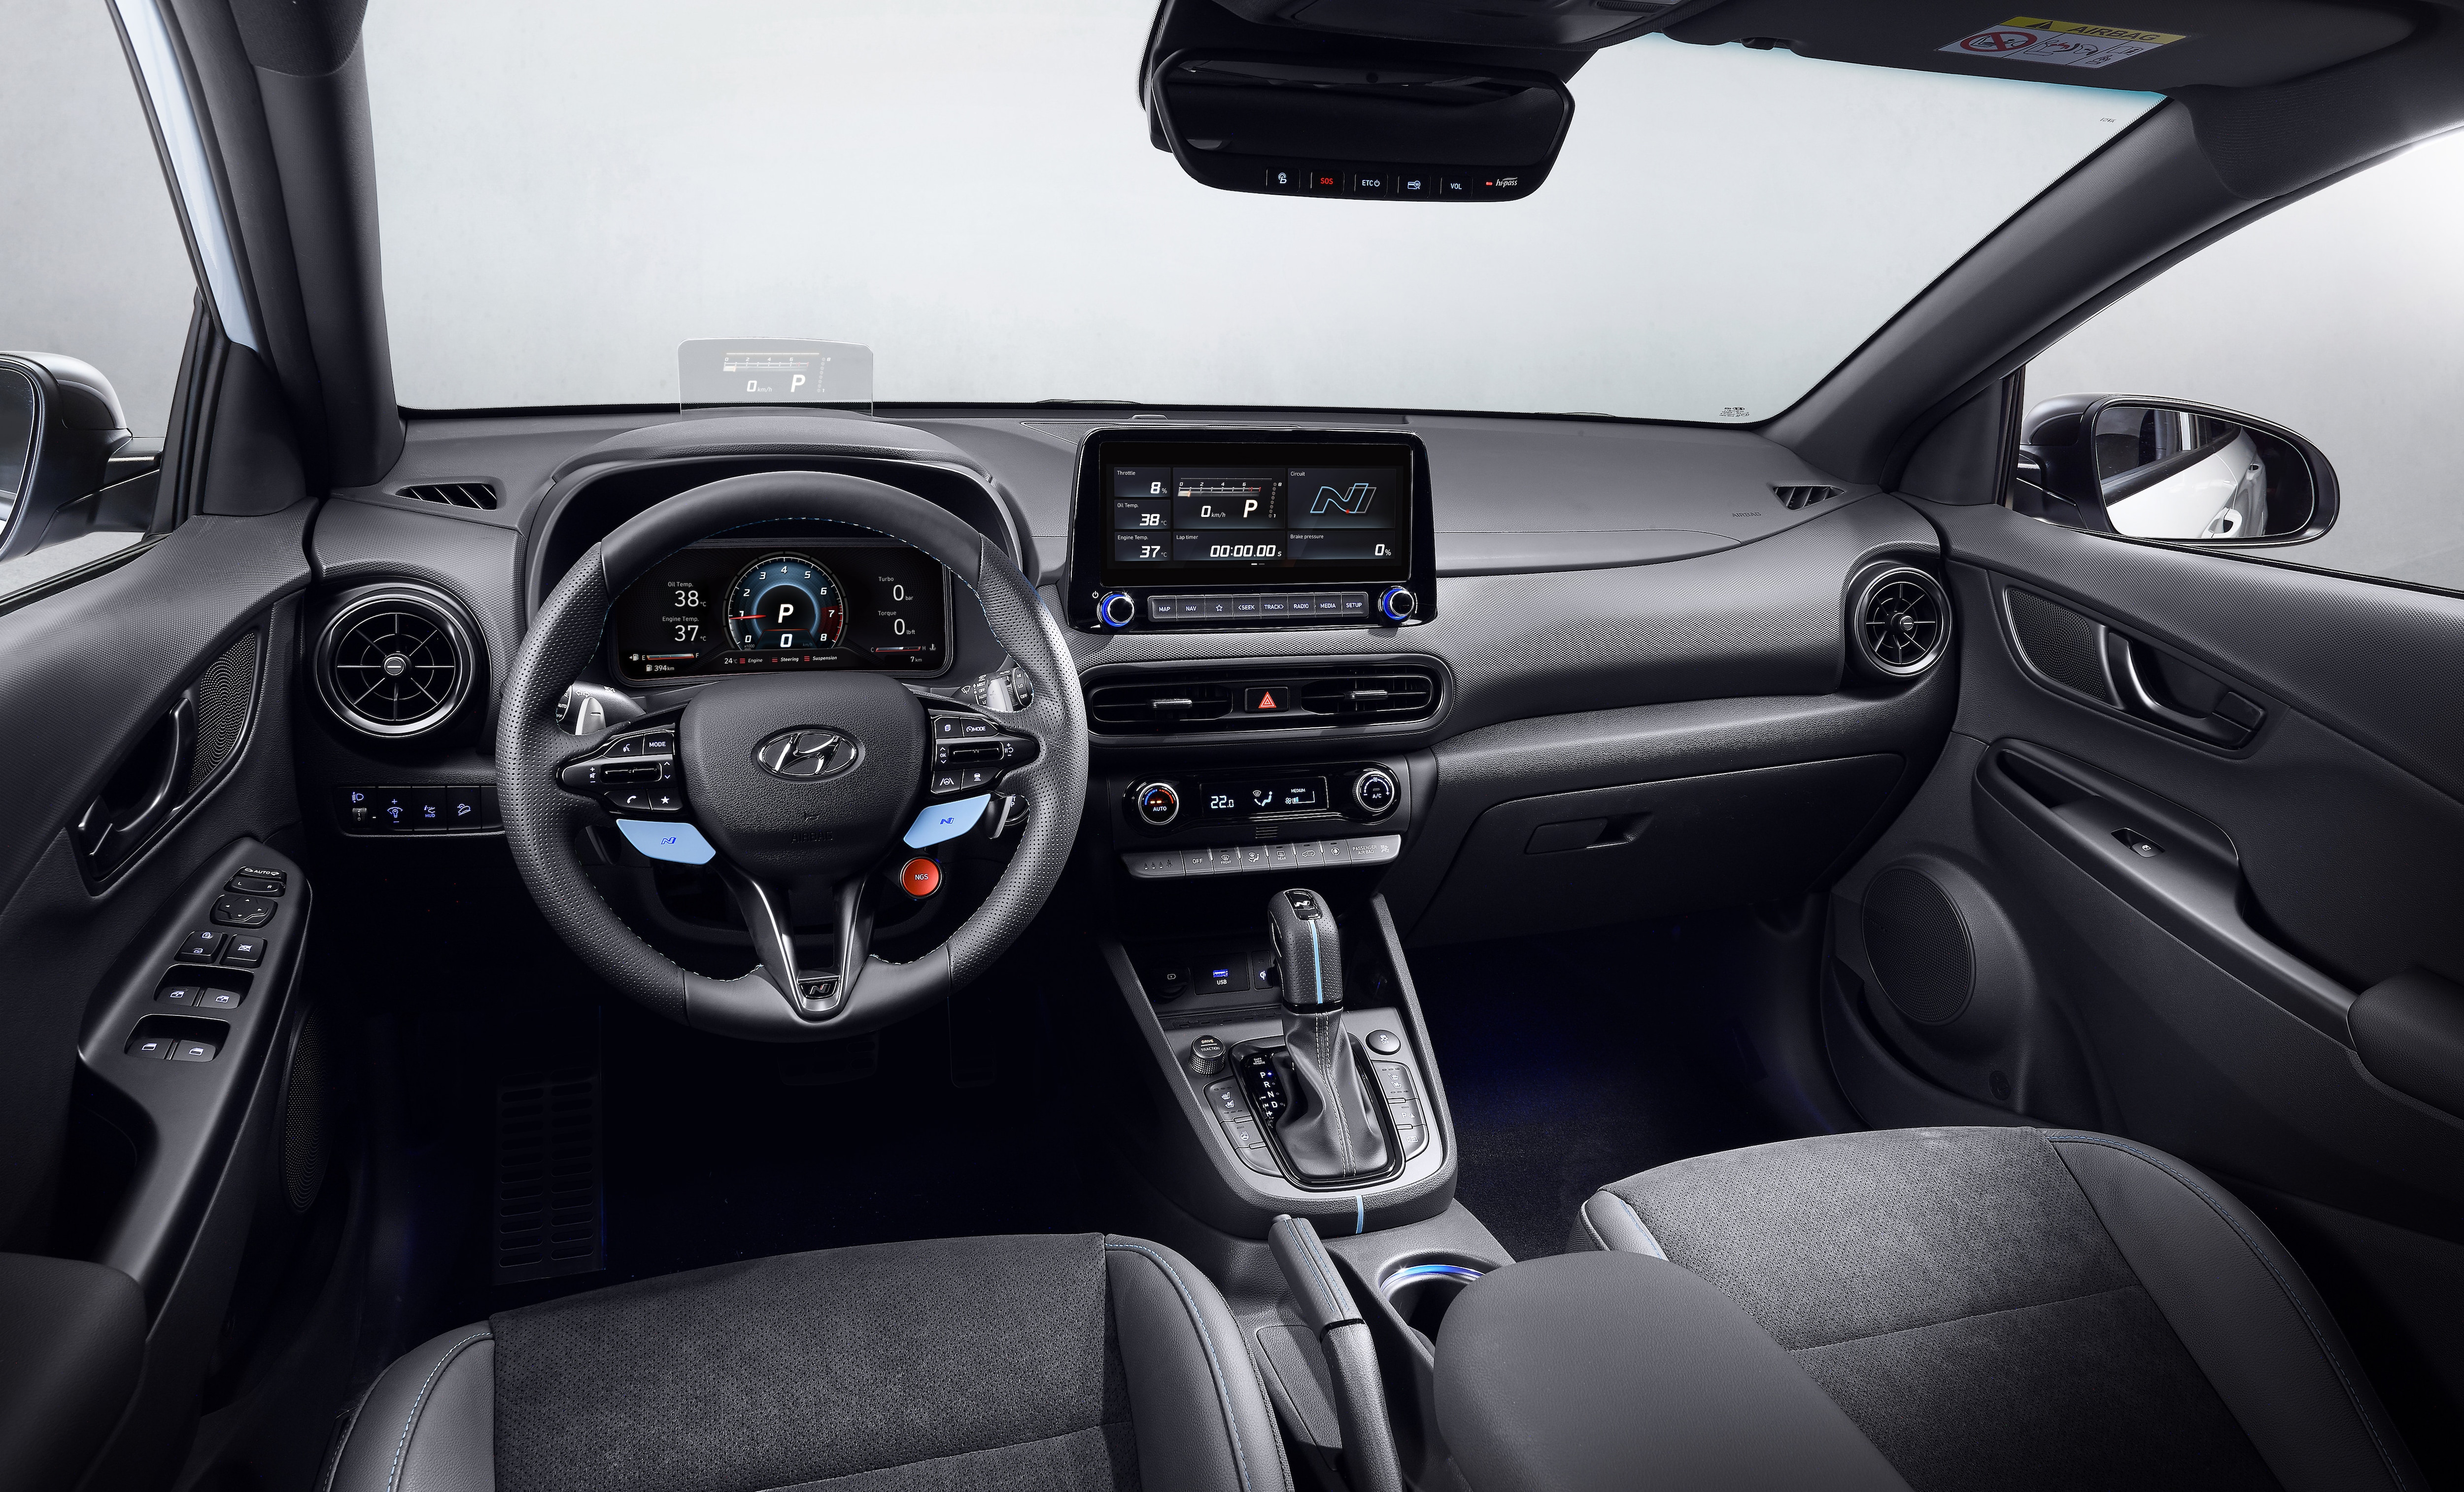 On the inside, the dashboard is dominated by two 10.25-inch displays for the instrument panel and the infotainment system that is compatible with Android Auto and Apple CarPlay.